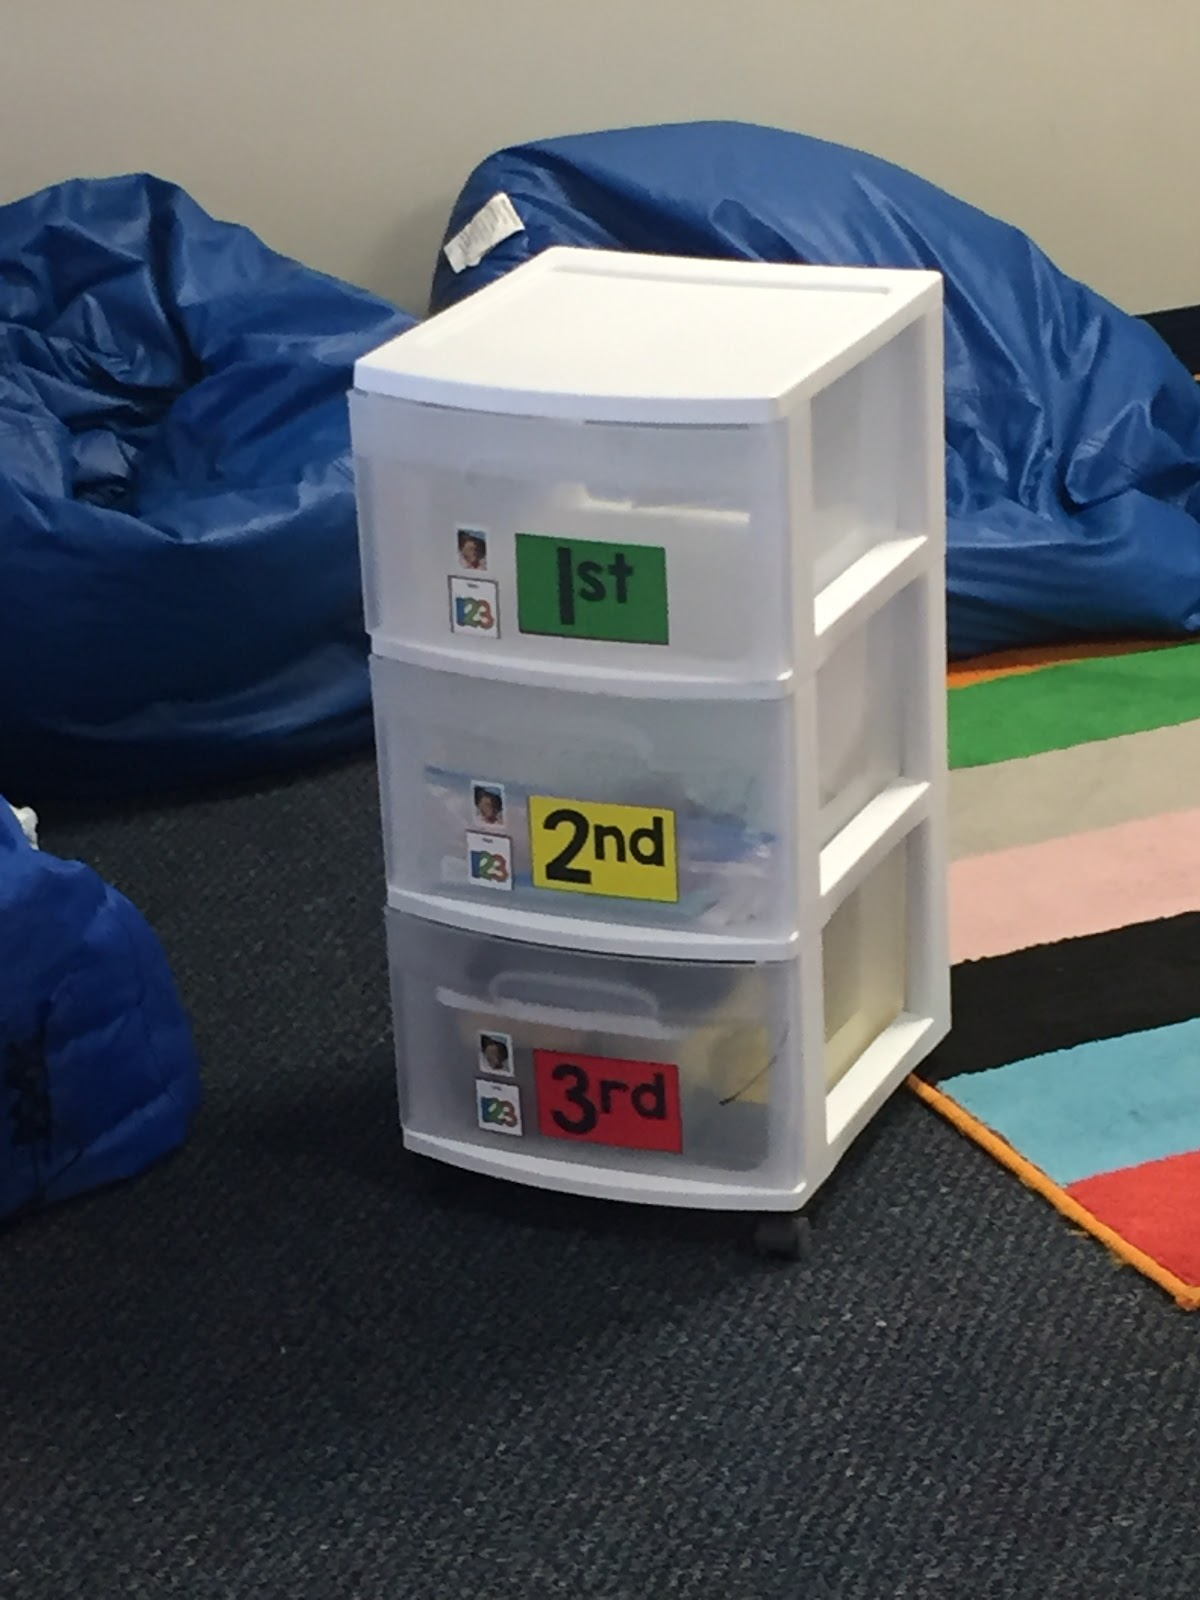 A bin with three drawers labeled 1st, 2nd and 3rd provides an example of a structured work system